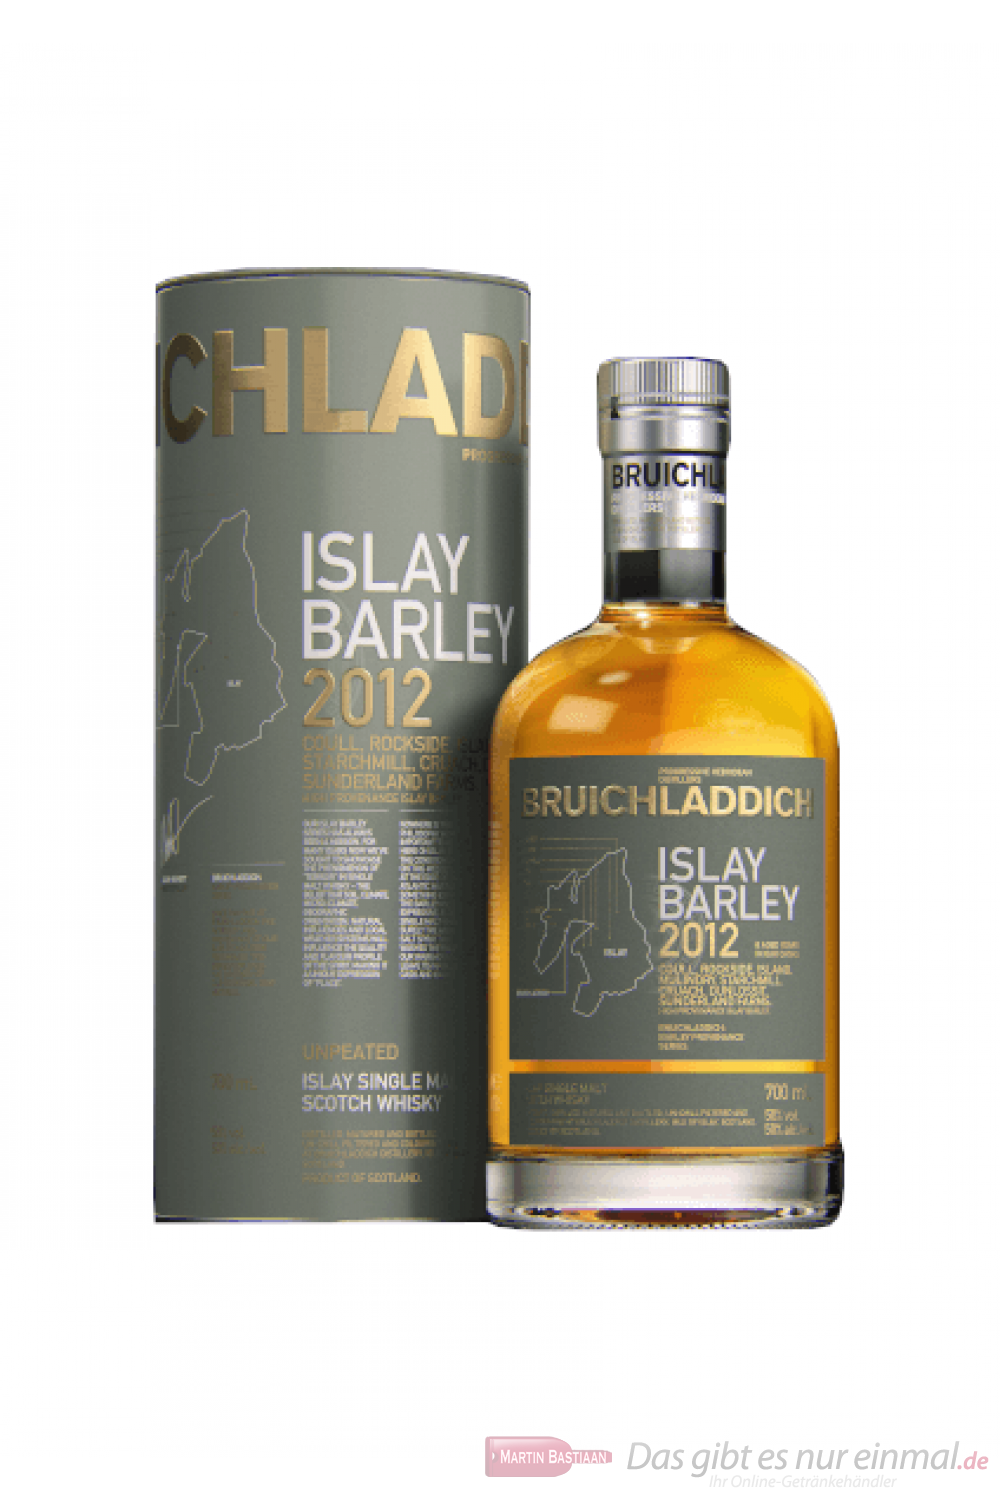 Bruichladdich Islay Barley 2012 Single Malt Scotch Whisky 0,7l